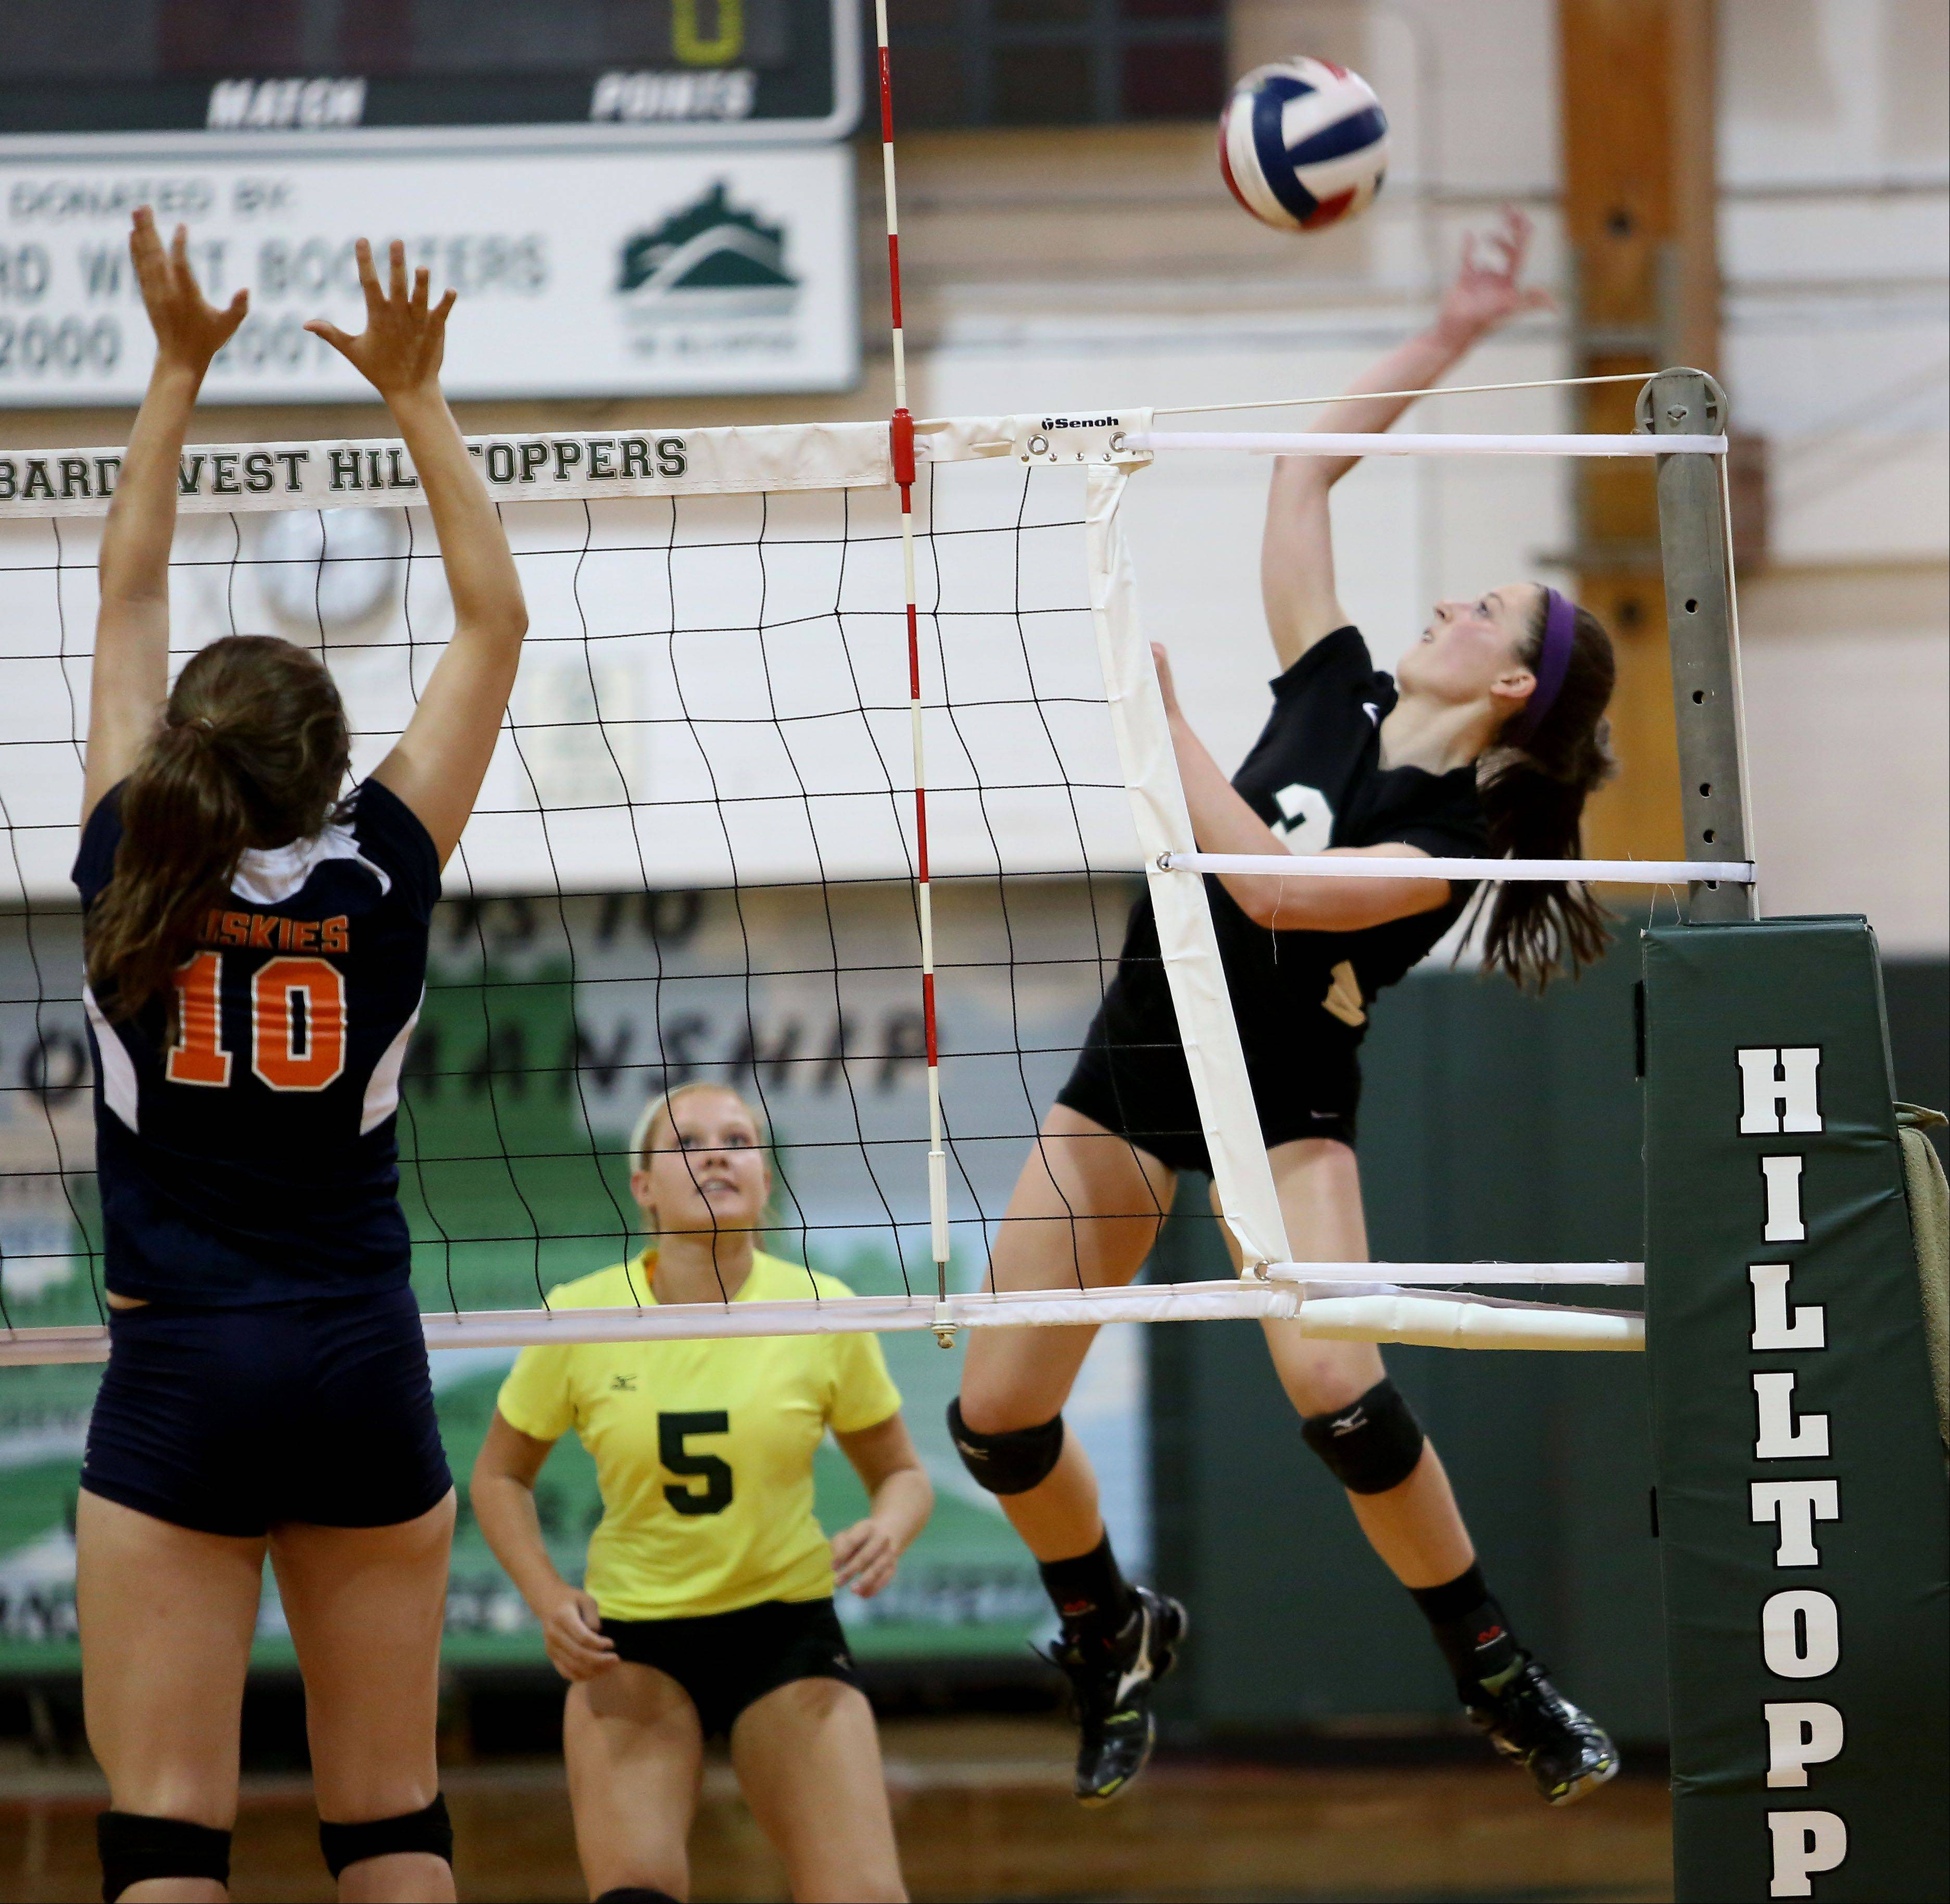 Alison Burelbach of Glenbard West goes up to spike the ball against Oak Park River Forest girls volleyball on Tuesday in Glen Ellyn.